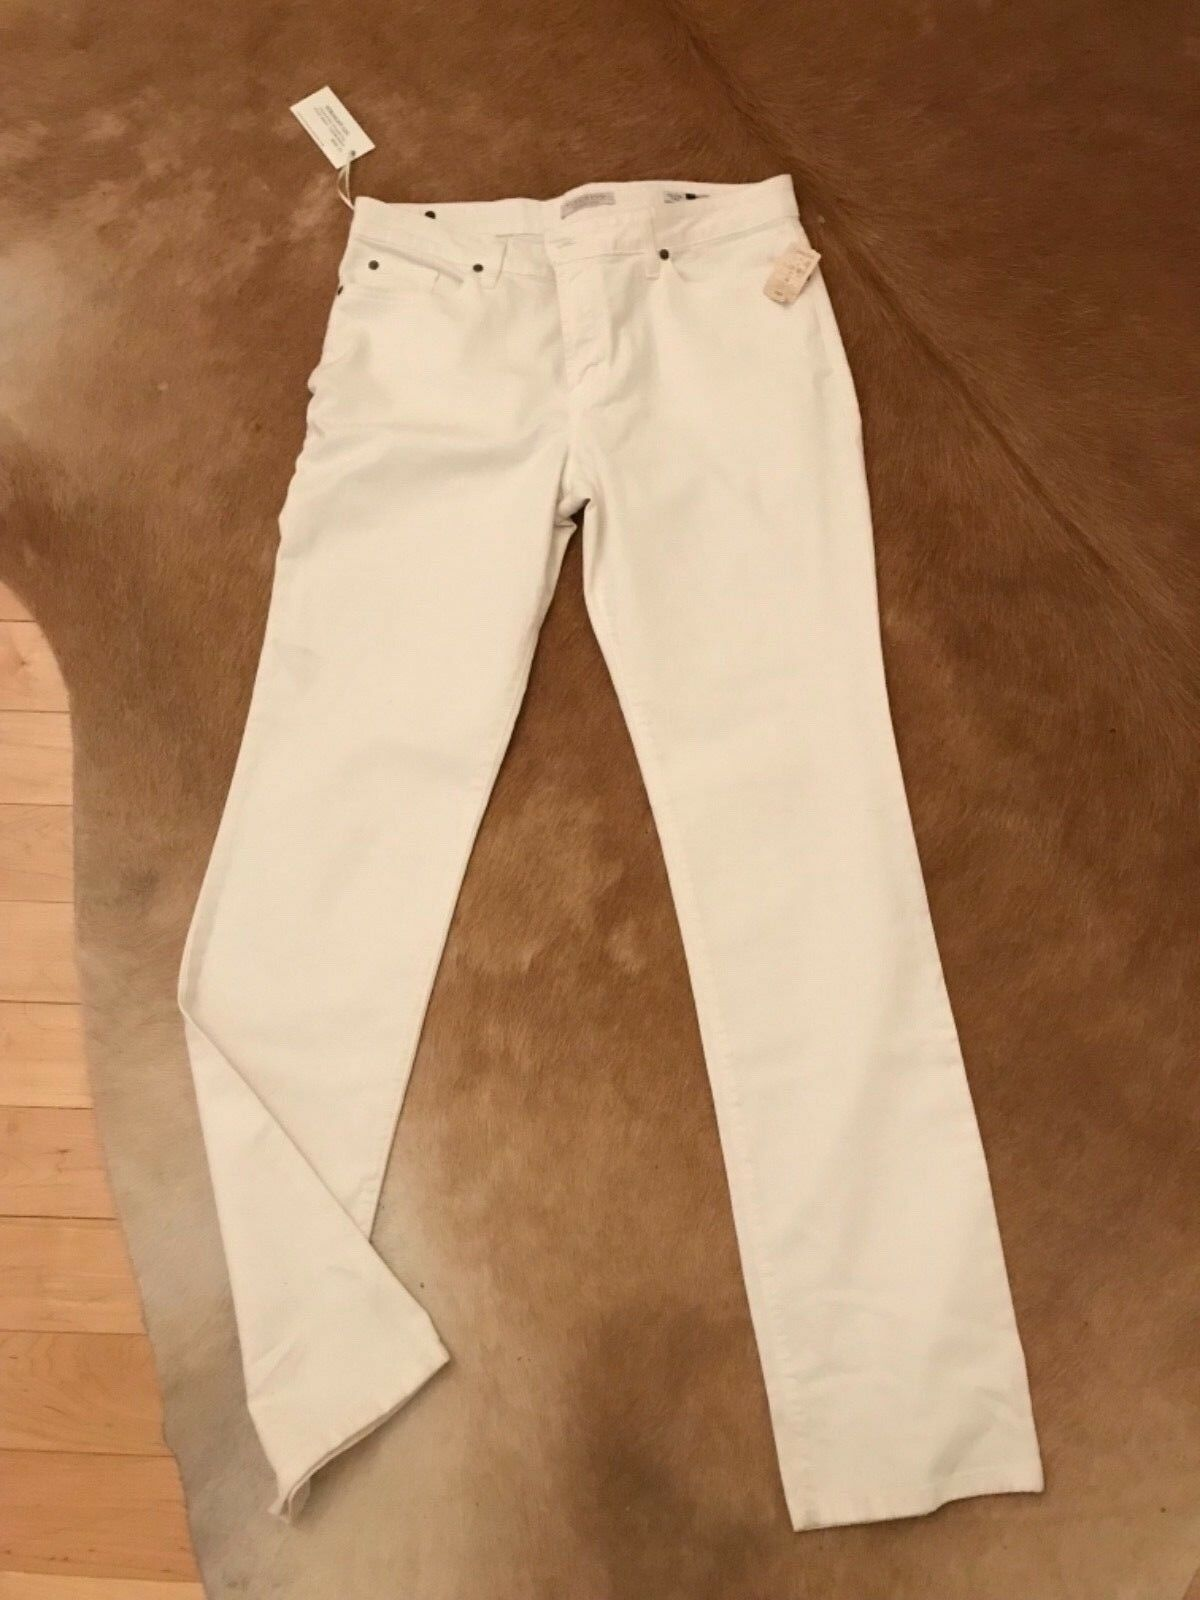 VIZCAINO PREMIUM DENIM WHITE STRAIGHT LEG ORIGINAL RISE STRETCH JEAN SZ 14